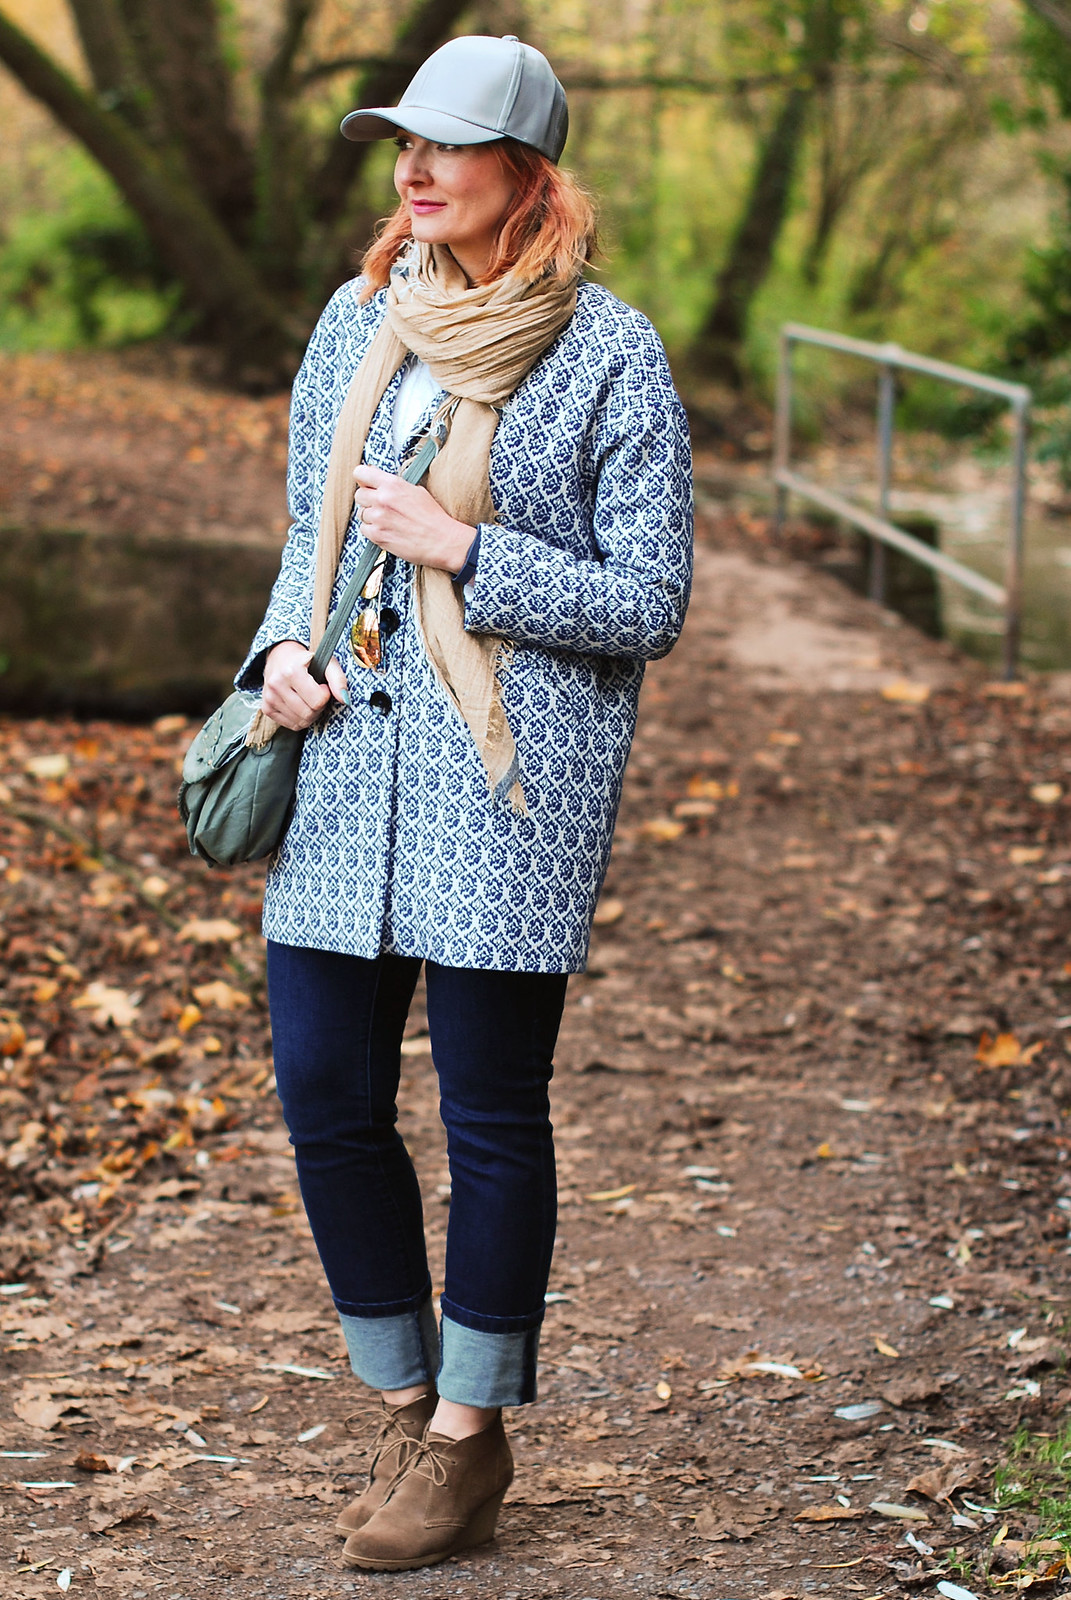 Cold weather walking in the woods walking the dog outfit Tapestry coat, deep hem skinnie jeans, grey cap and wedge desert boots | Not Dressed As Lamb, over 40 style blog